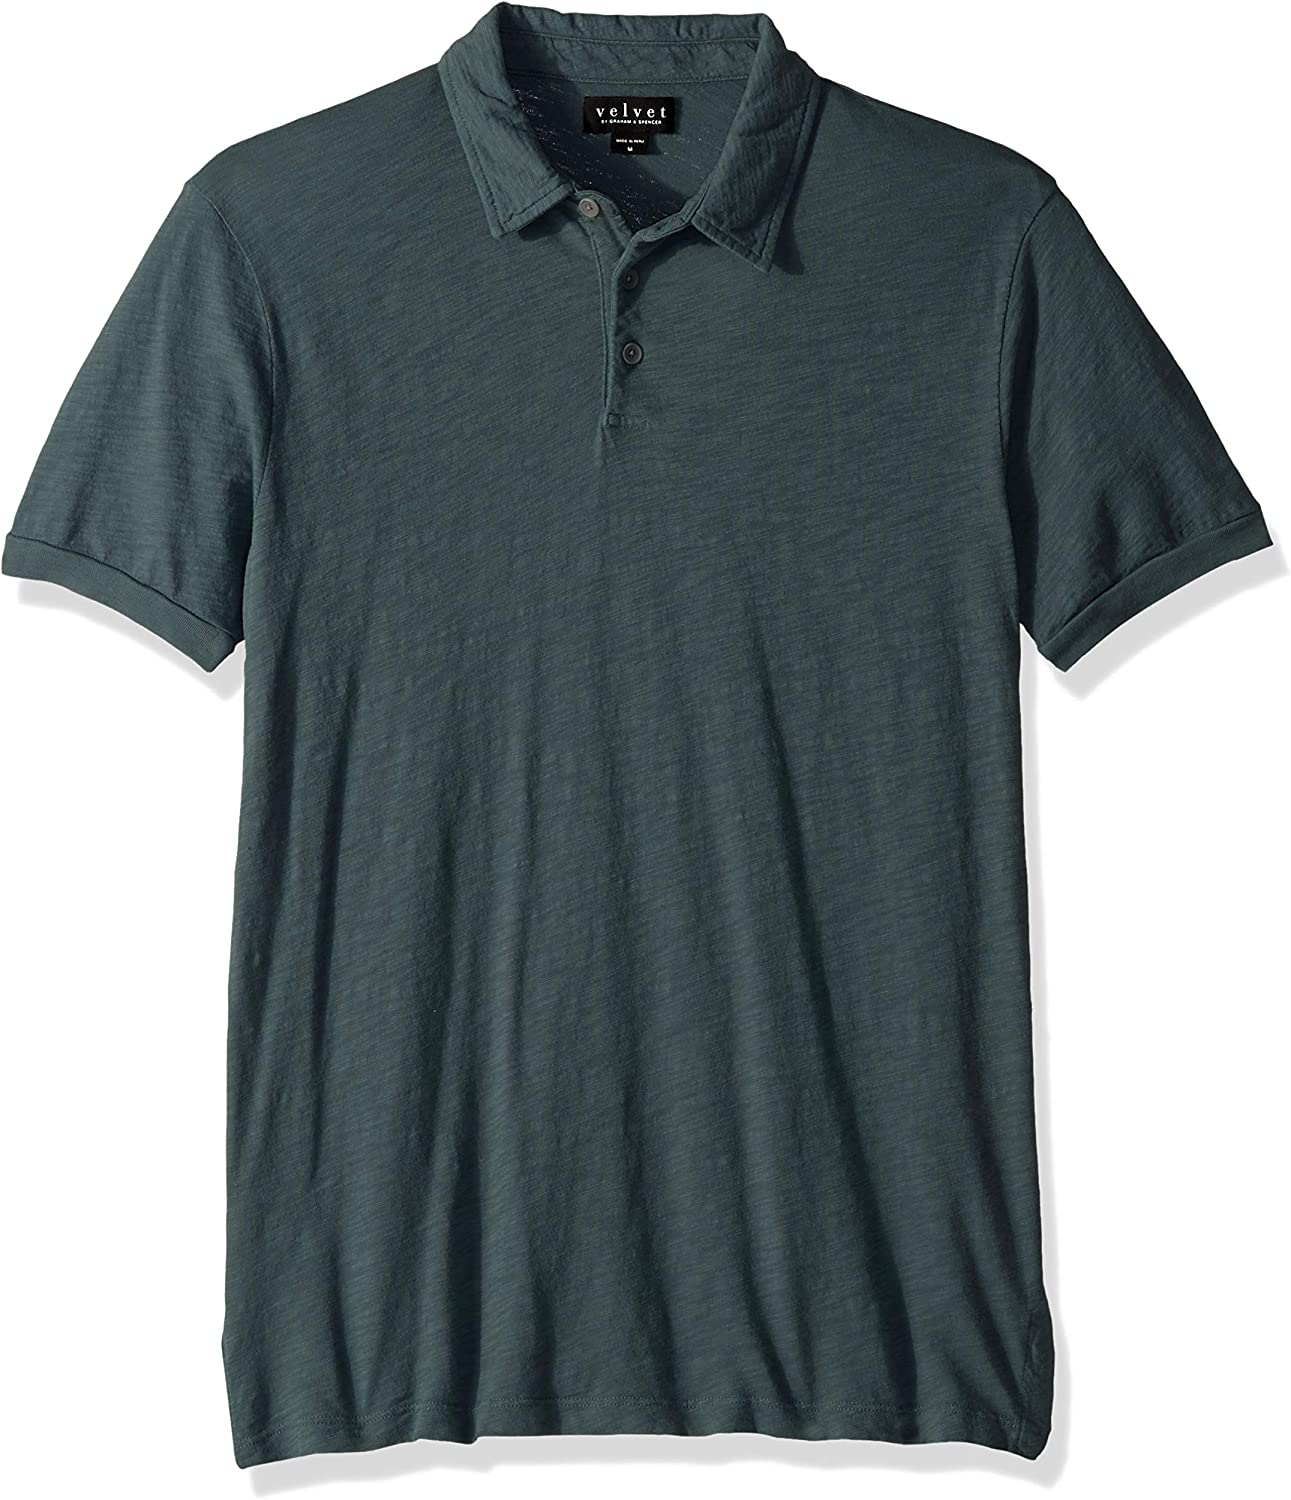 Velvet by Inventory cleanup selling sale Graham New product Spencer Randall Polo Men's